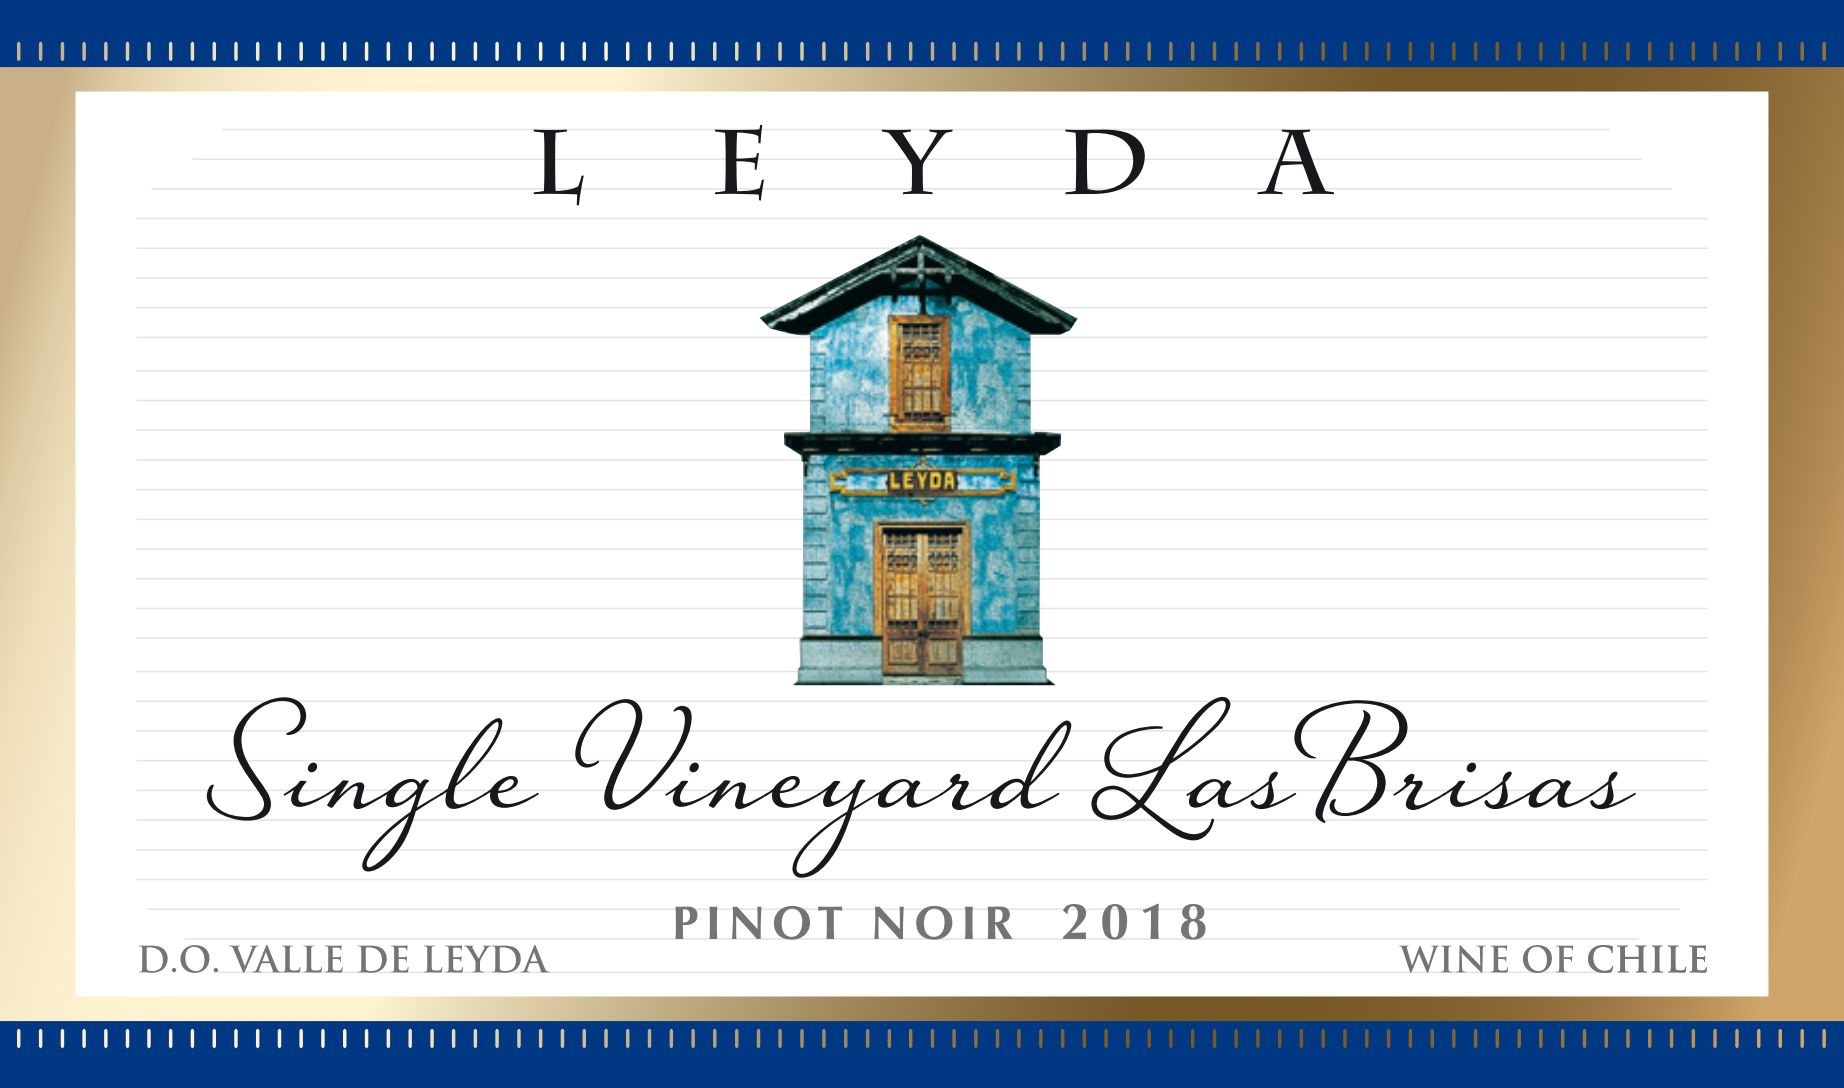 Vina Leyda Single Vineyard Las Brisas Pinot Noir 2018  Front Label